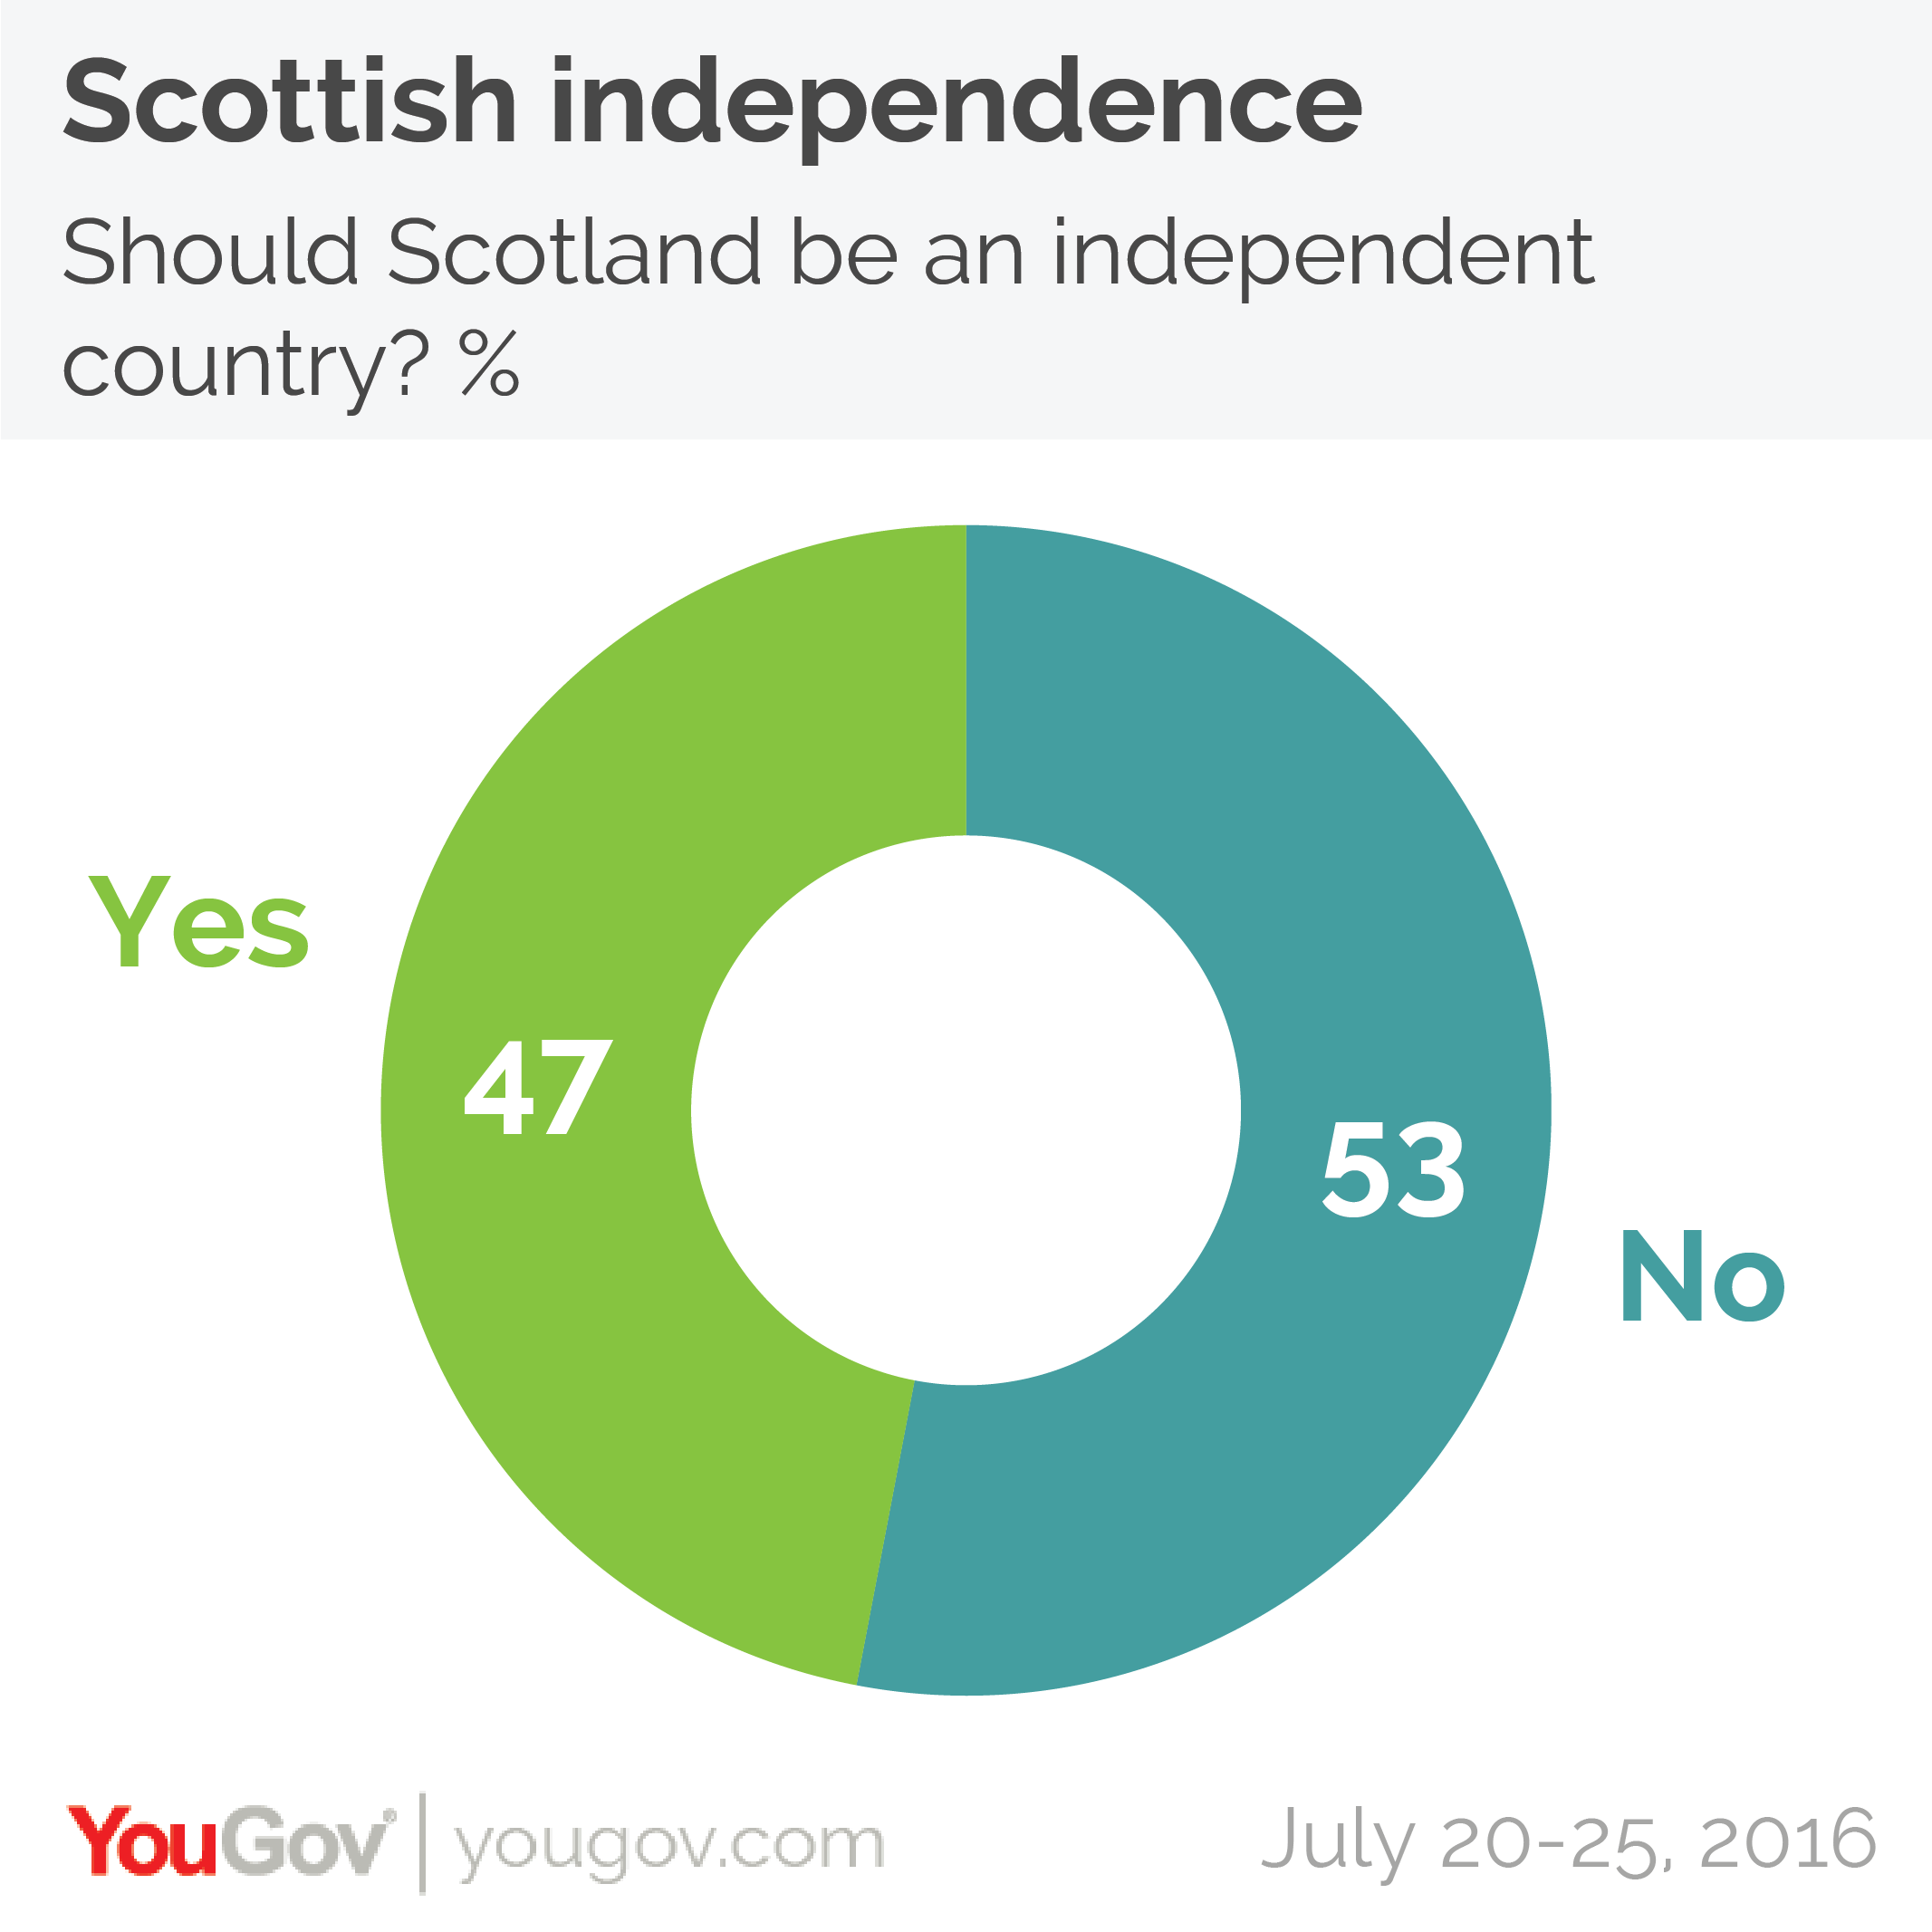 referendum for scottish independence Edinburgh — nicola sturgeon, scotland's first minister, said friday that a new referendum on independence in scotland was highly likely now that britain had voted to leave the european.